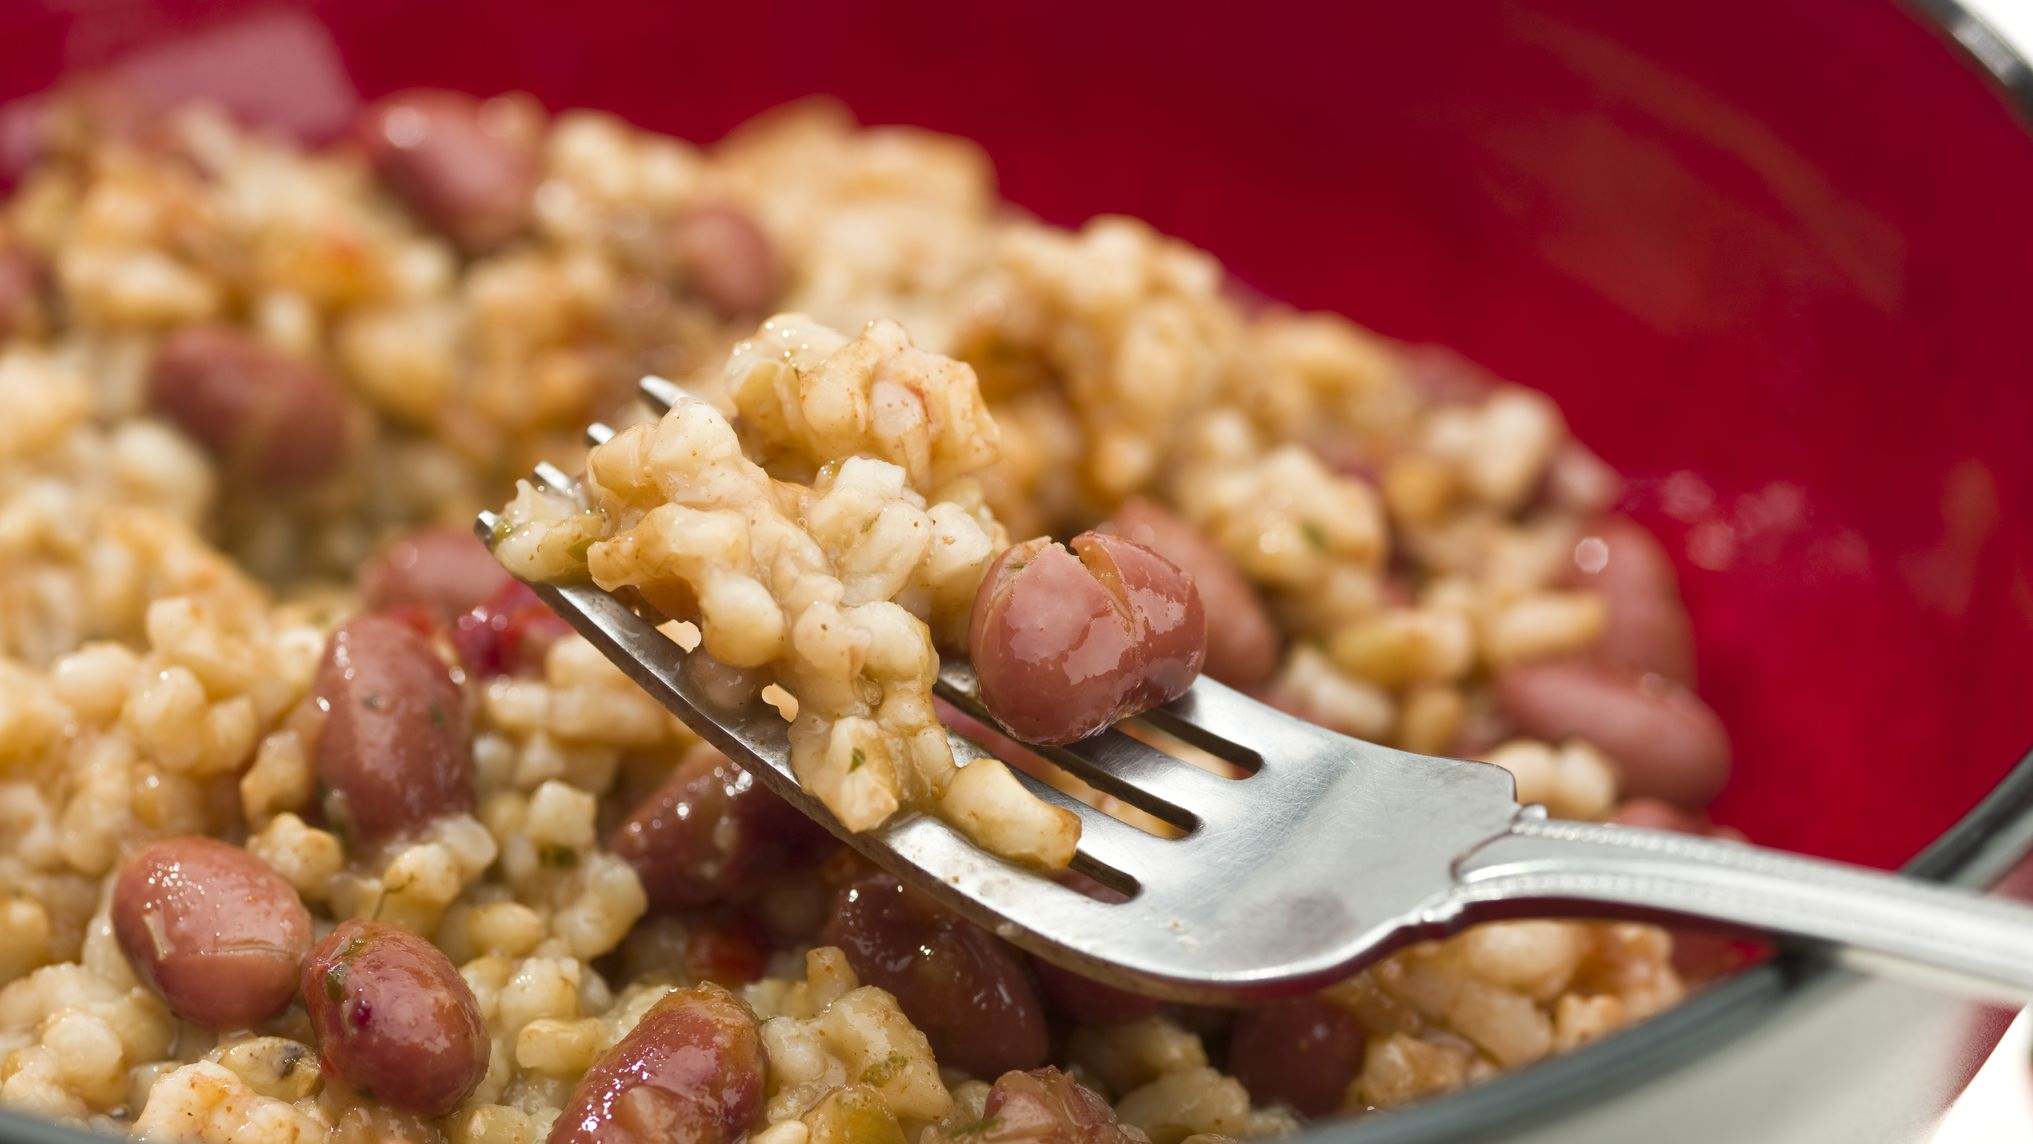 Spanish Beans And Rice Alubias Con Arroz Recipe